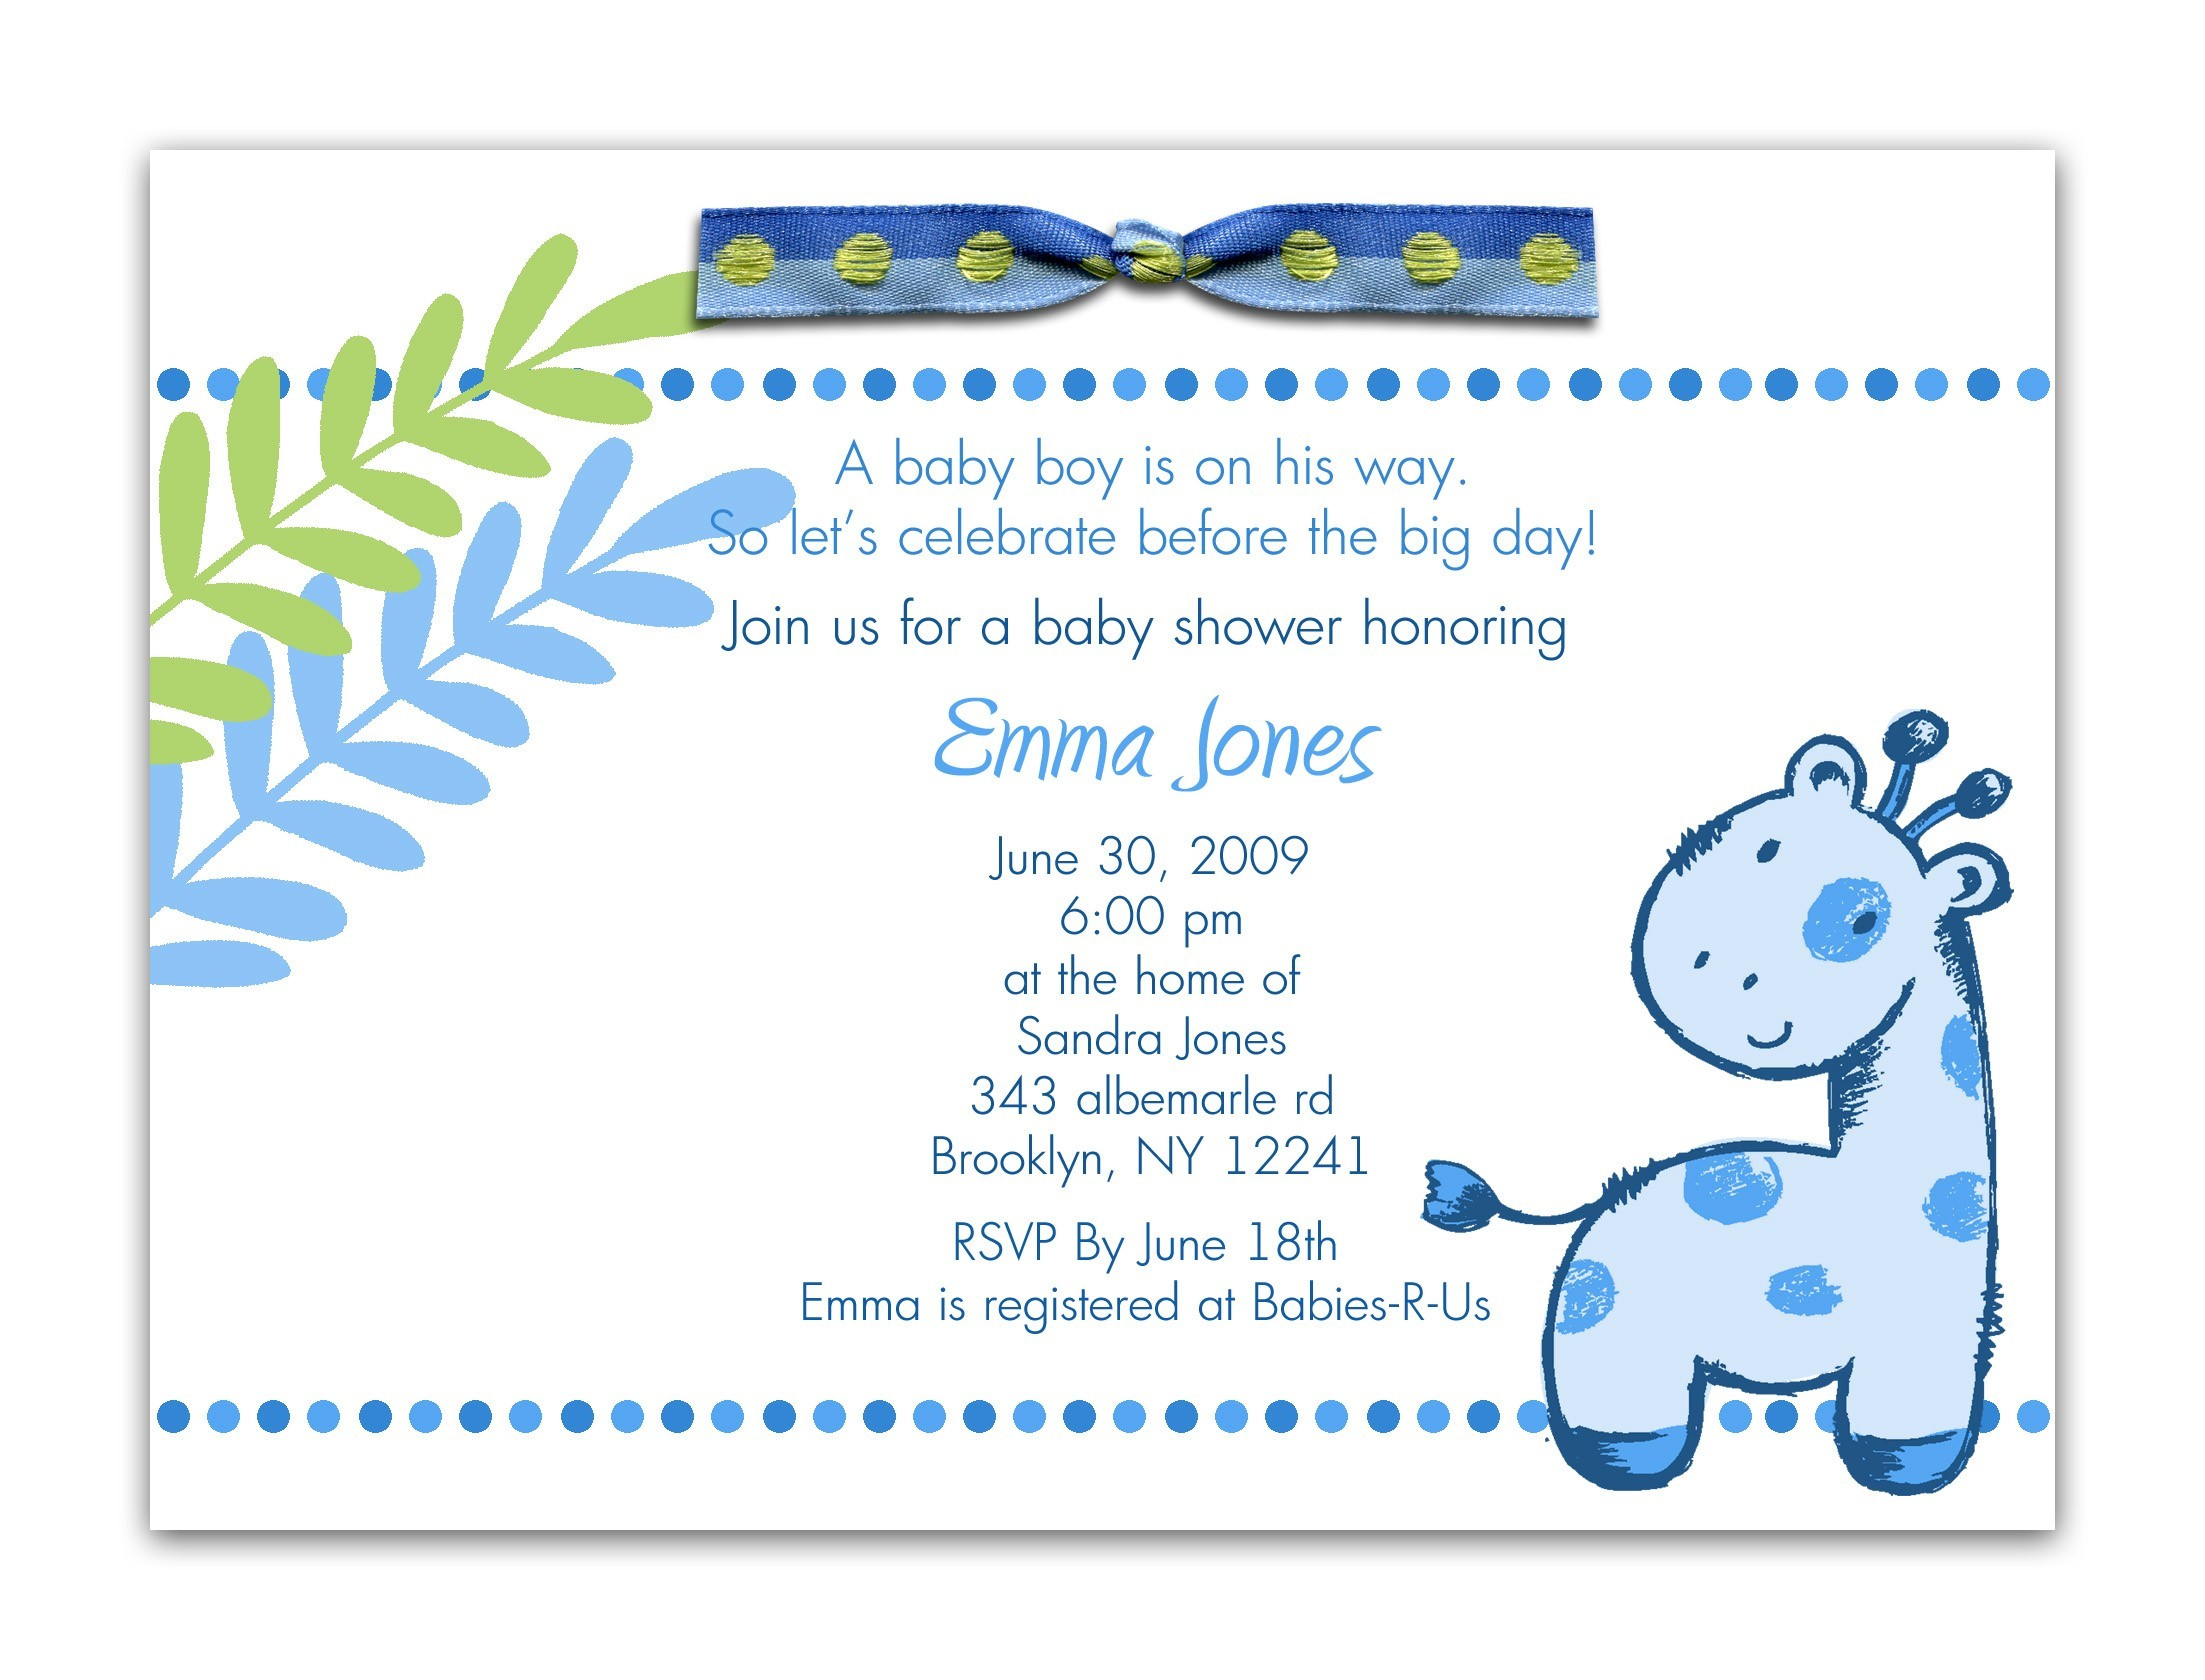 Cool Invitation For Baby Shower: Excellent Baby Boy Shower Invitation regarding New Baby Boy Baby Shower Invitations